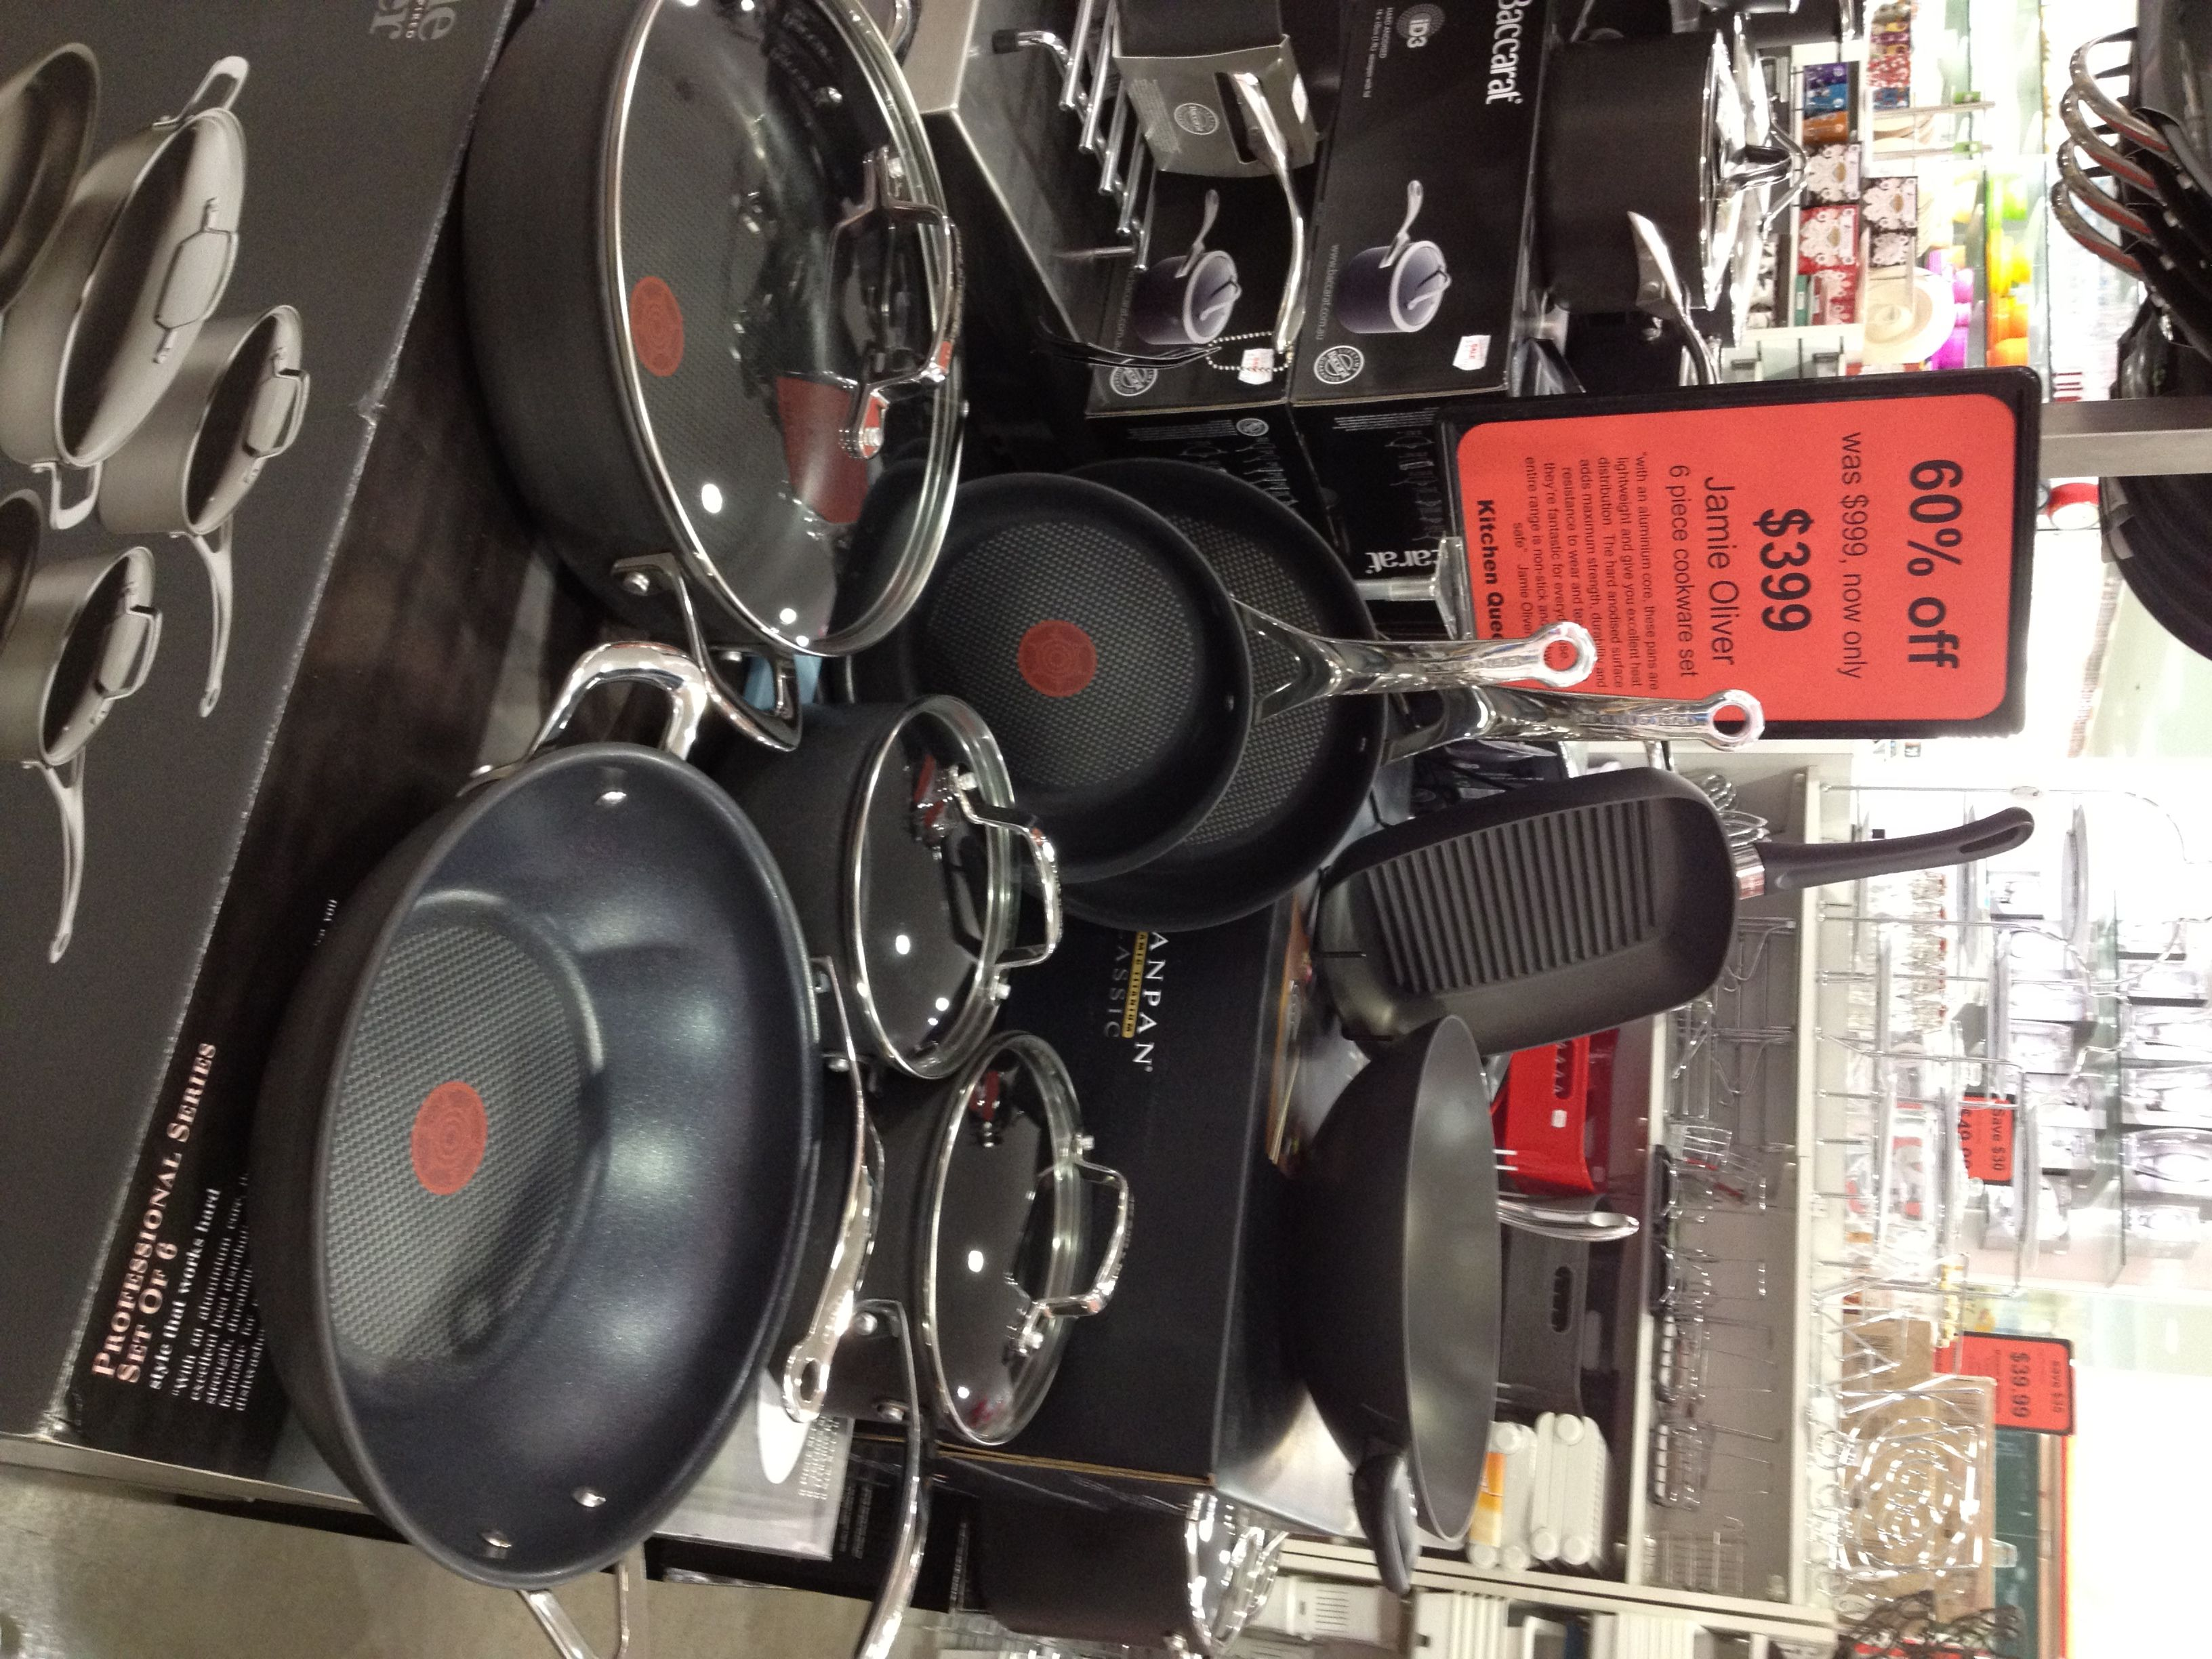 Emily, Kitchen Queen. Jamie Oliver Cookware Set. $399.00 | Pic ...